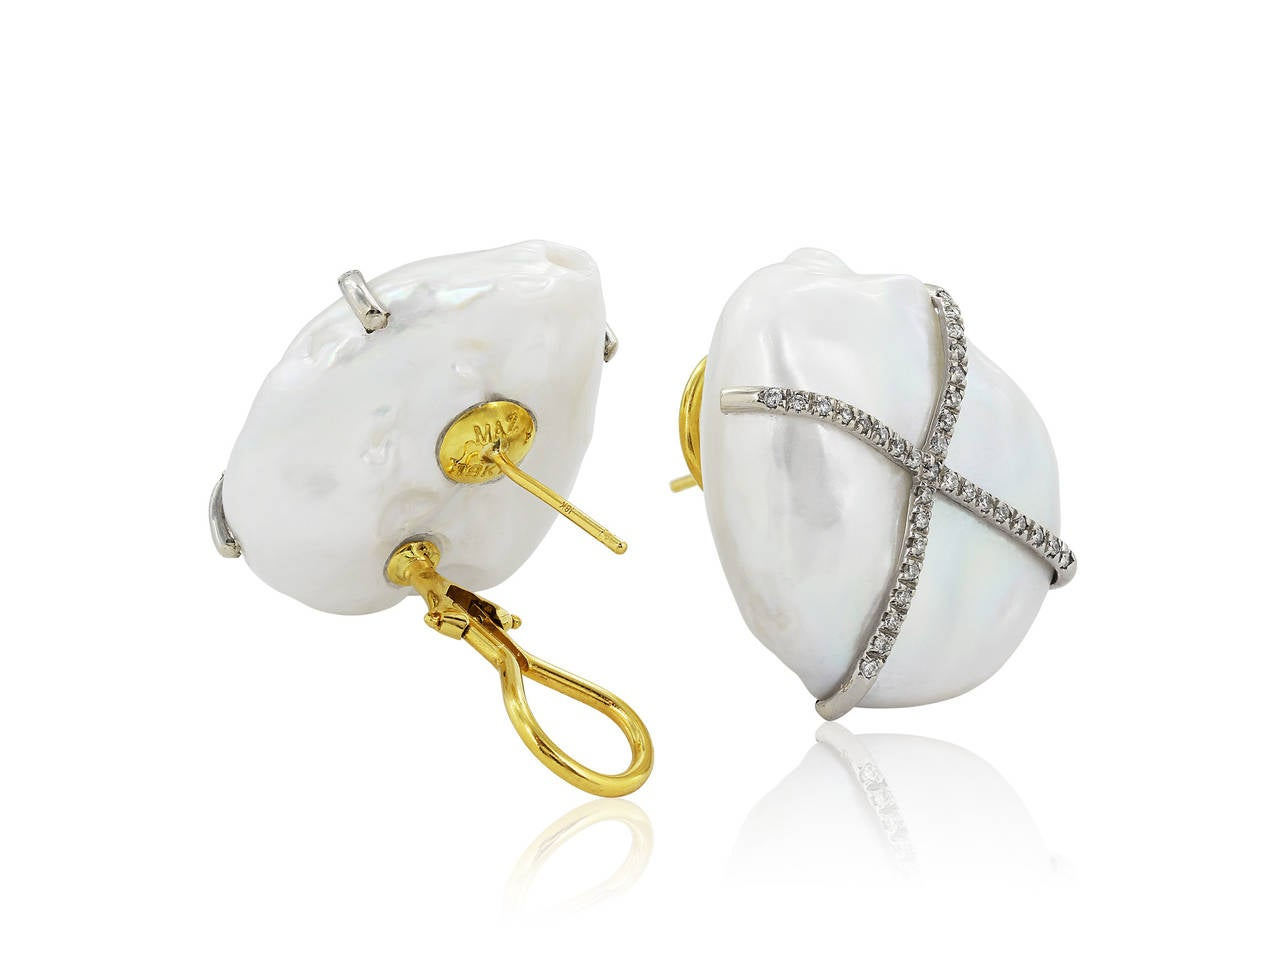 18 Karat Yellow Gold Earrings Consisting Of 2 Fresh Water Pearls Set With Full Cut Diamonds Weighing A Total  Of .33 Carats. Diamonds Are Set In An X Design.